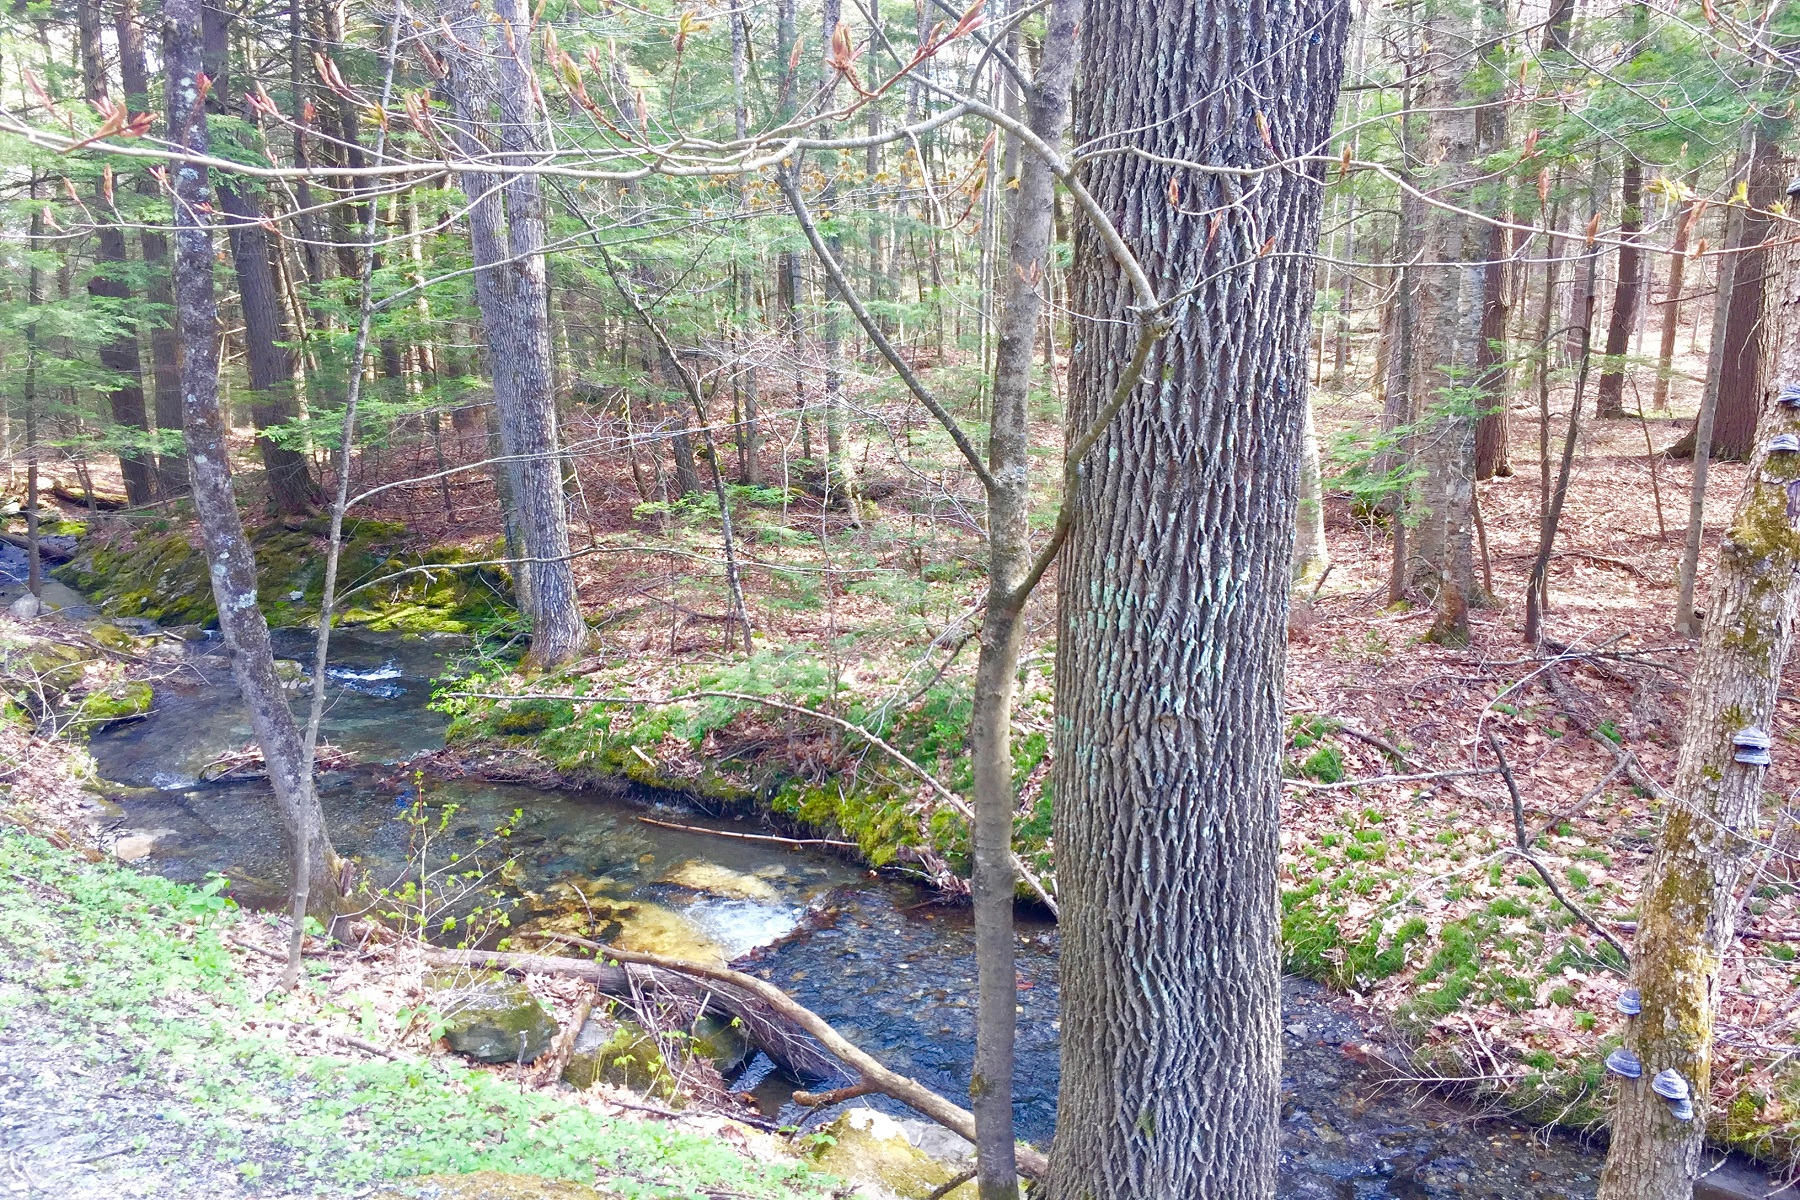 Property for Sale at Super Location 567 Silver Hill Road West Windsor, Vermont 05089 United States